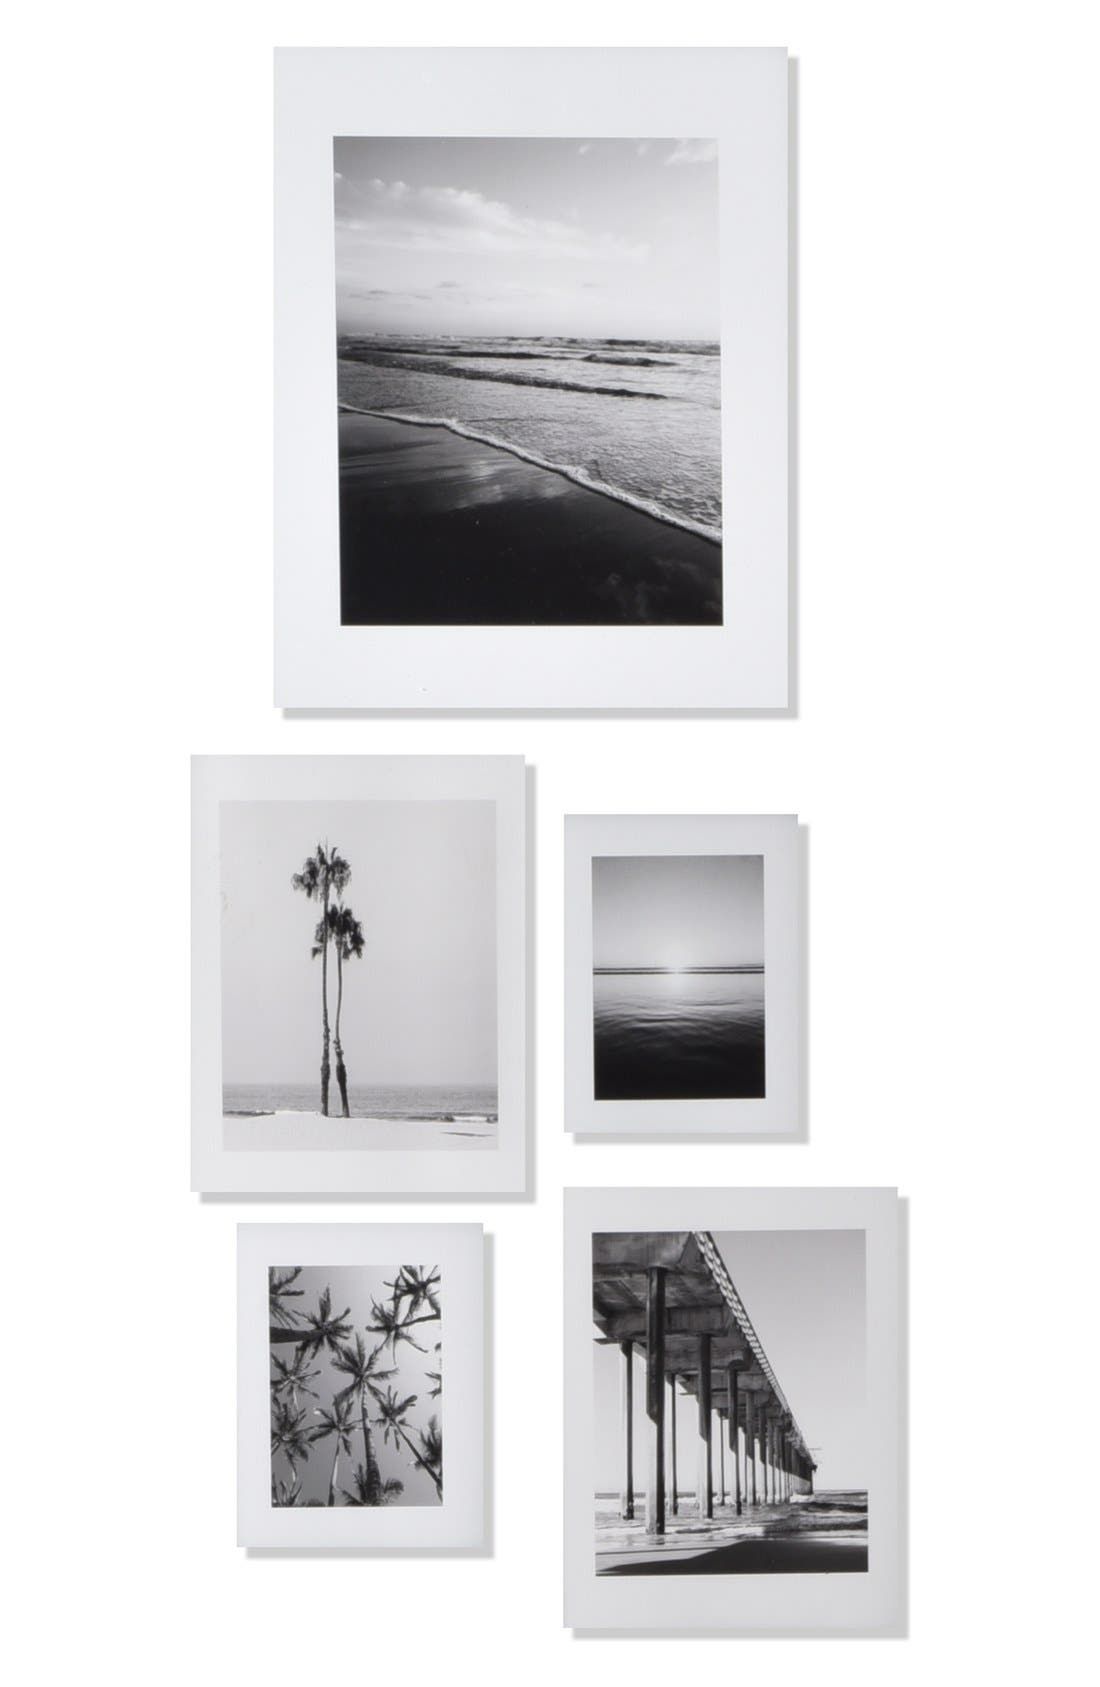 DENY Designs 'Ombré Beach' Wall Art Print Set (Set of 5)